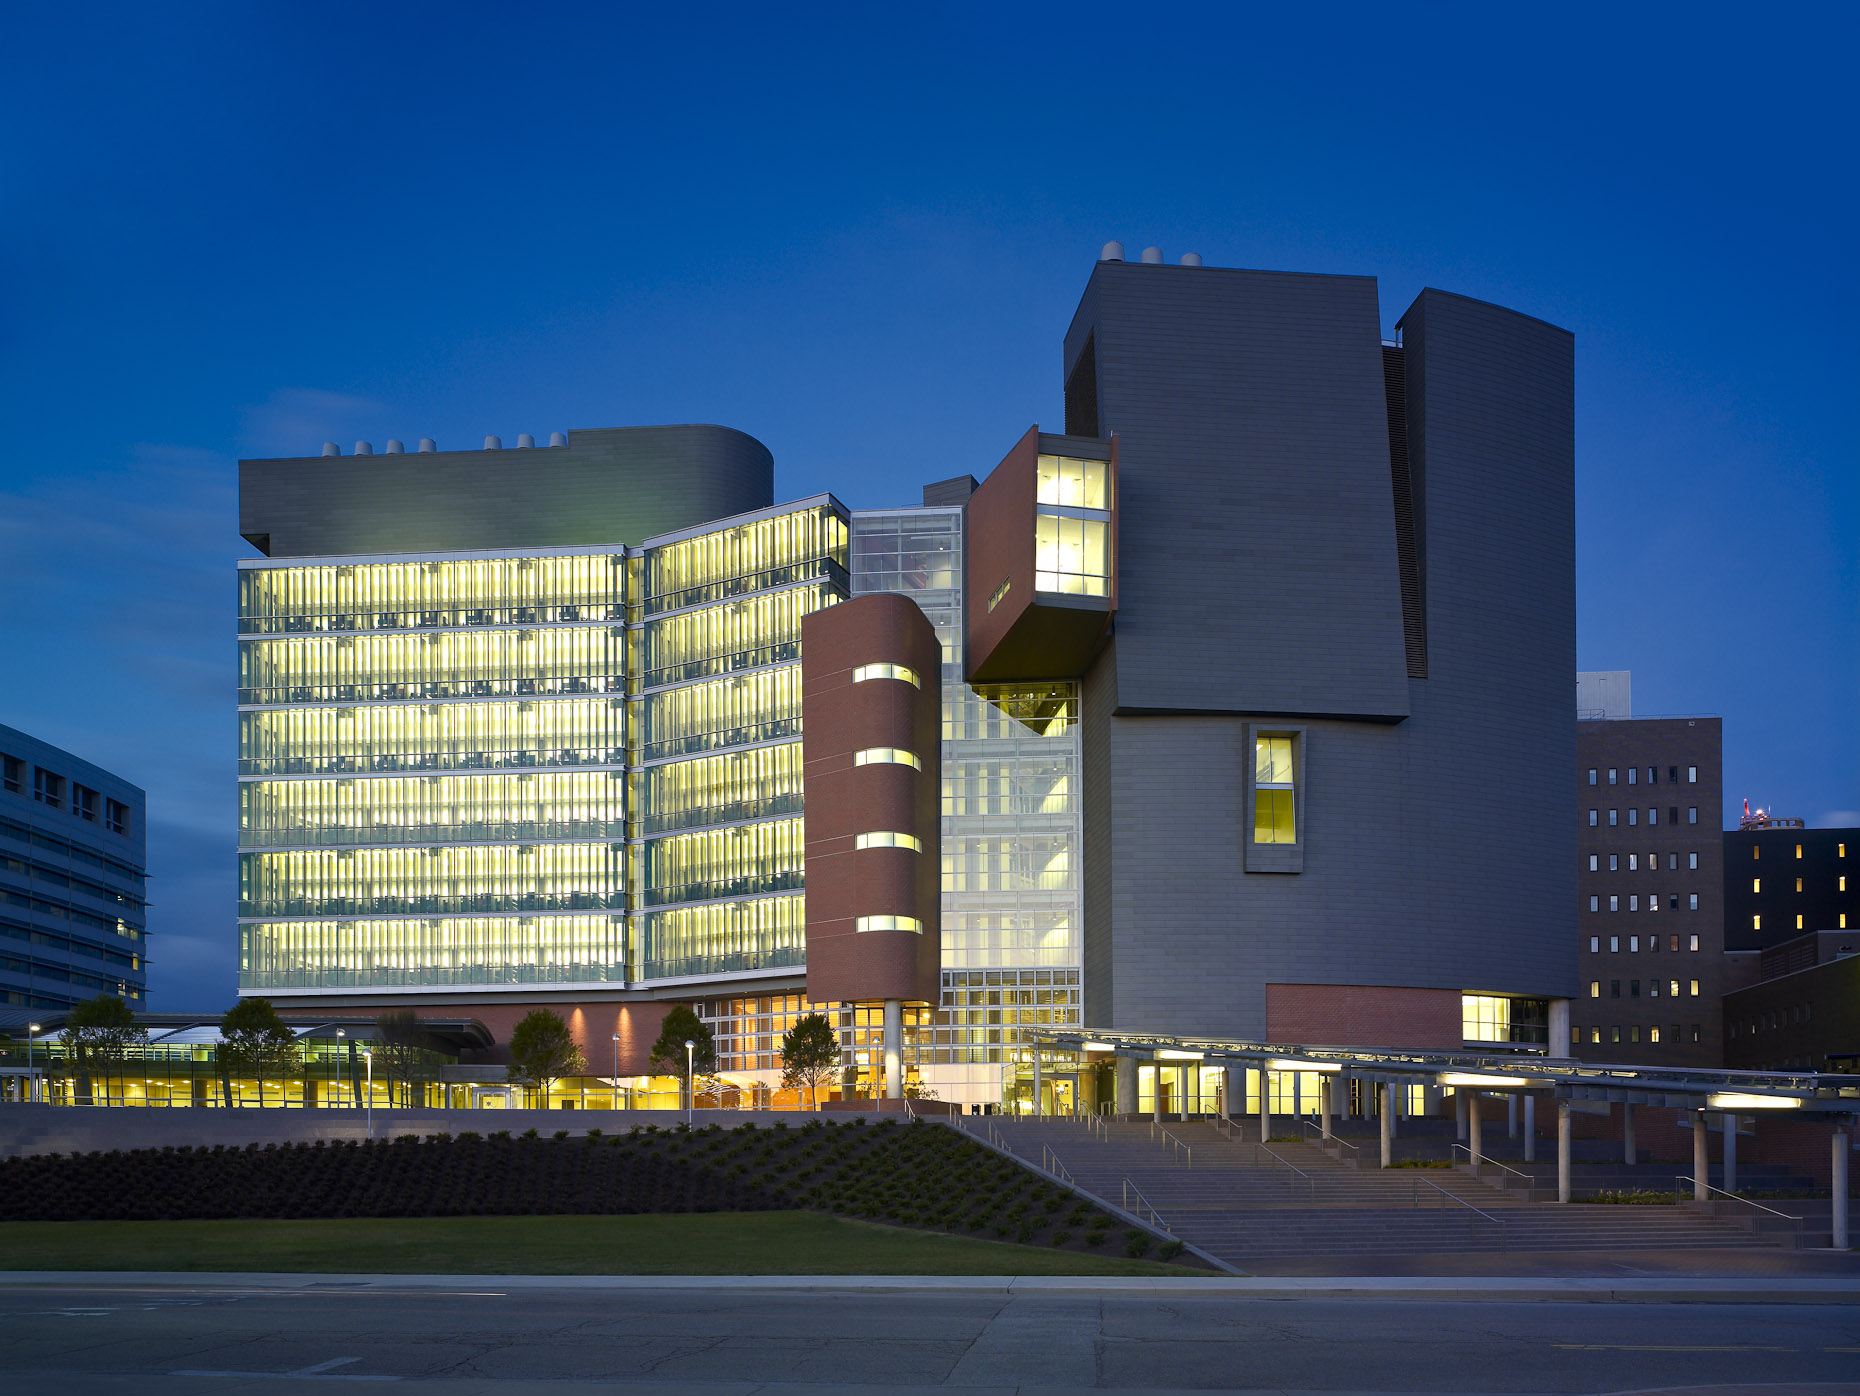 C.A.R.E. / Crawley Building at the University of Cincinnati by Studios Architecture